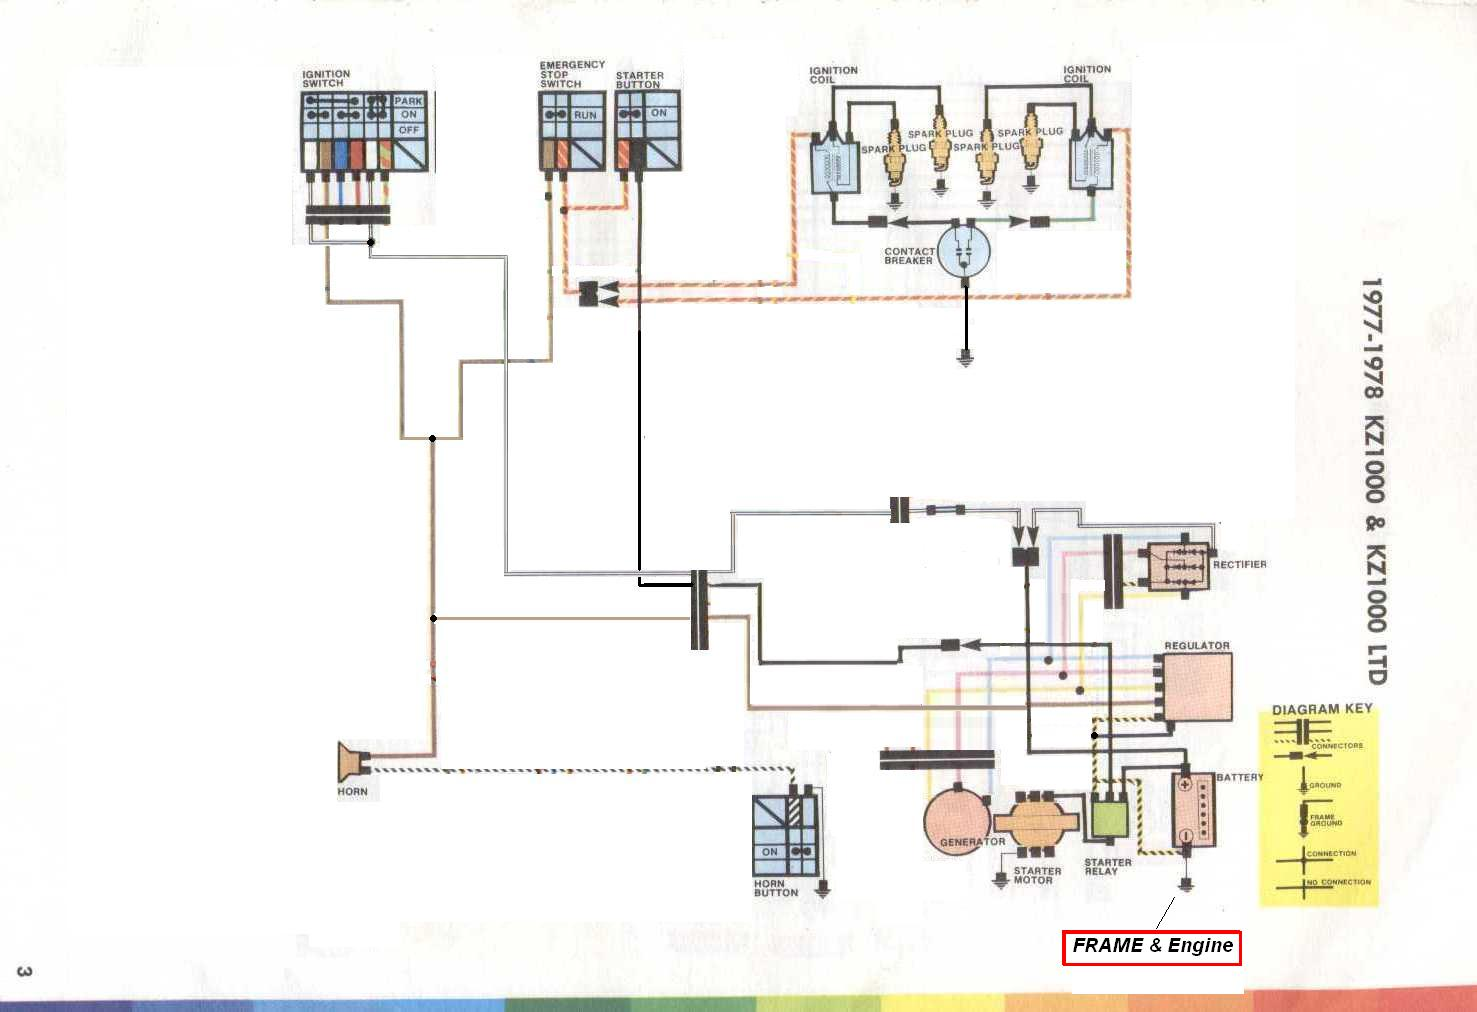 hight resolution of 1982 kz650 wiring diagram wiring diagram datasourceb2a kz650 wiring diagram manual e book 1982 kz650 wiring